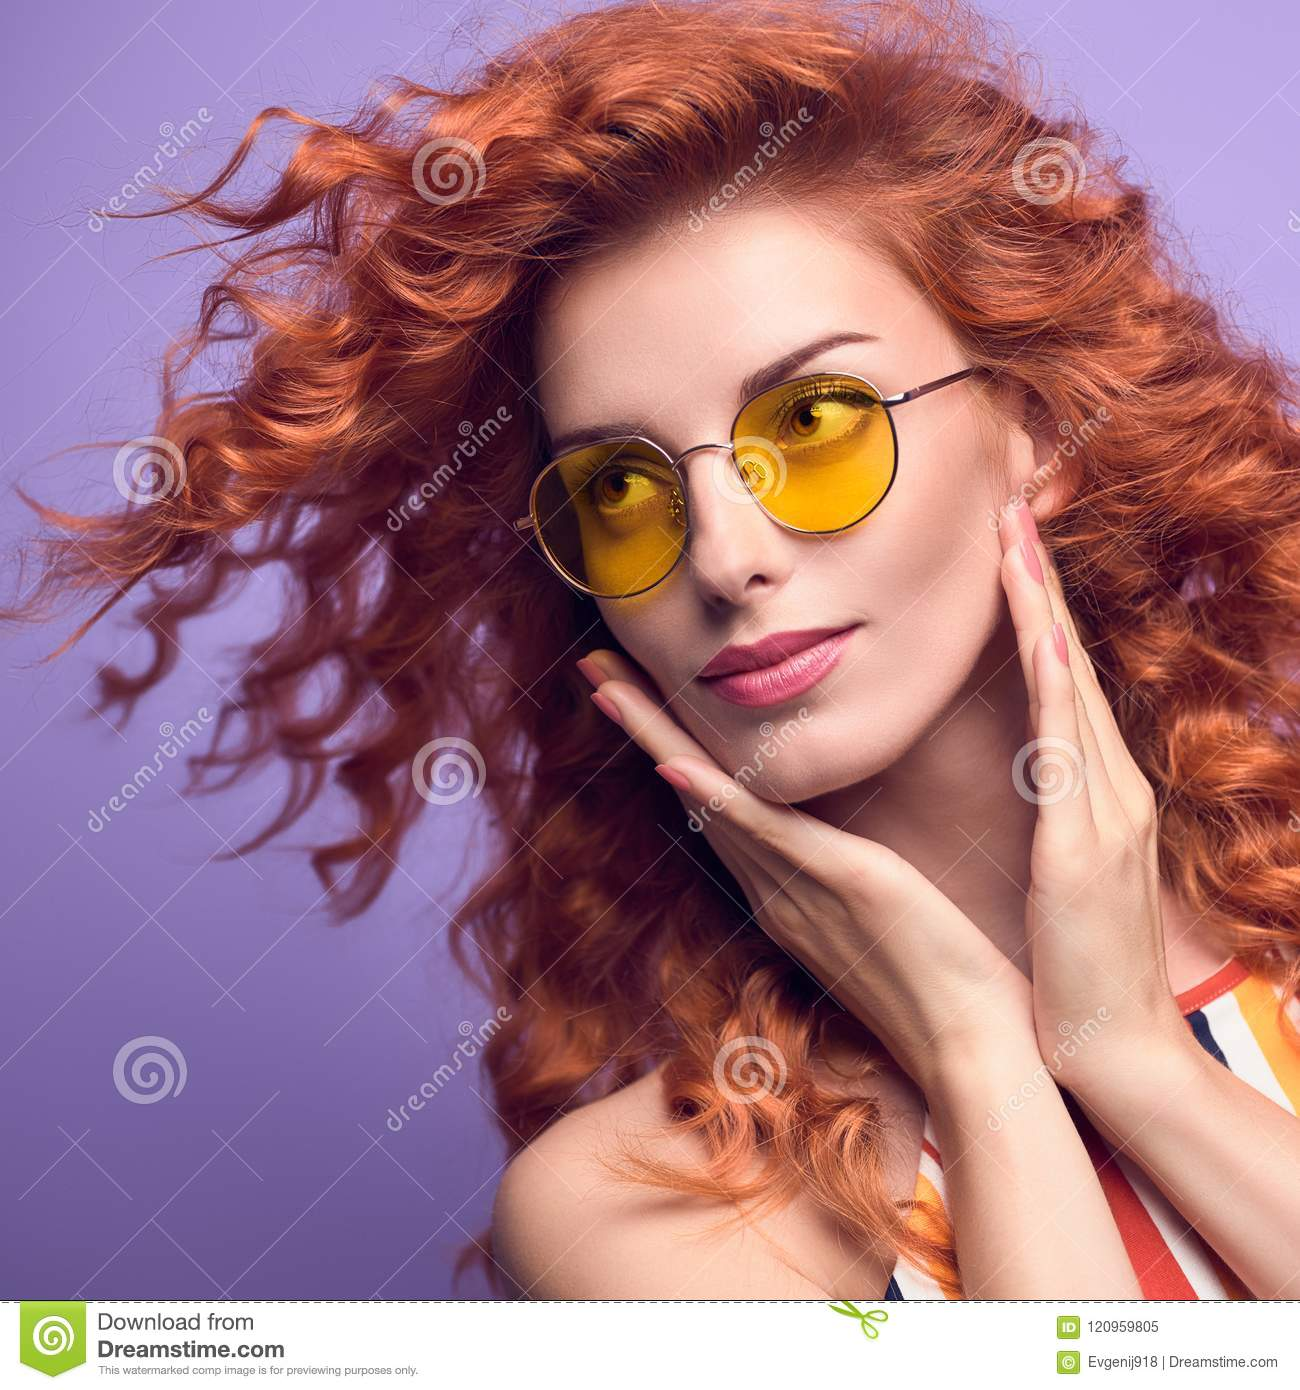 5fc307cd92e0 Fashion Portrait Young Beautiful Happy woman with Shiny Curly Hairstyle  Smiling in Studio. Redhead Girl in Stylish Summer Sunglasses. Attractive  Playful ...